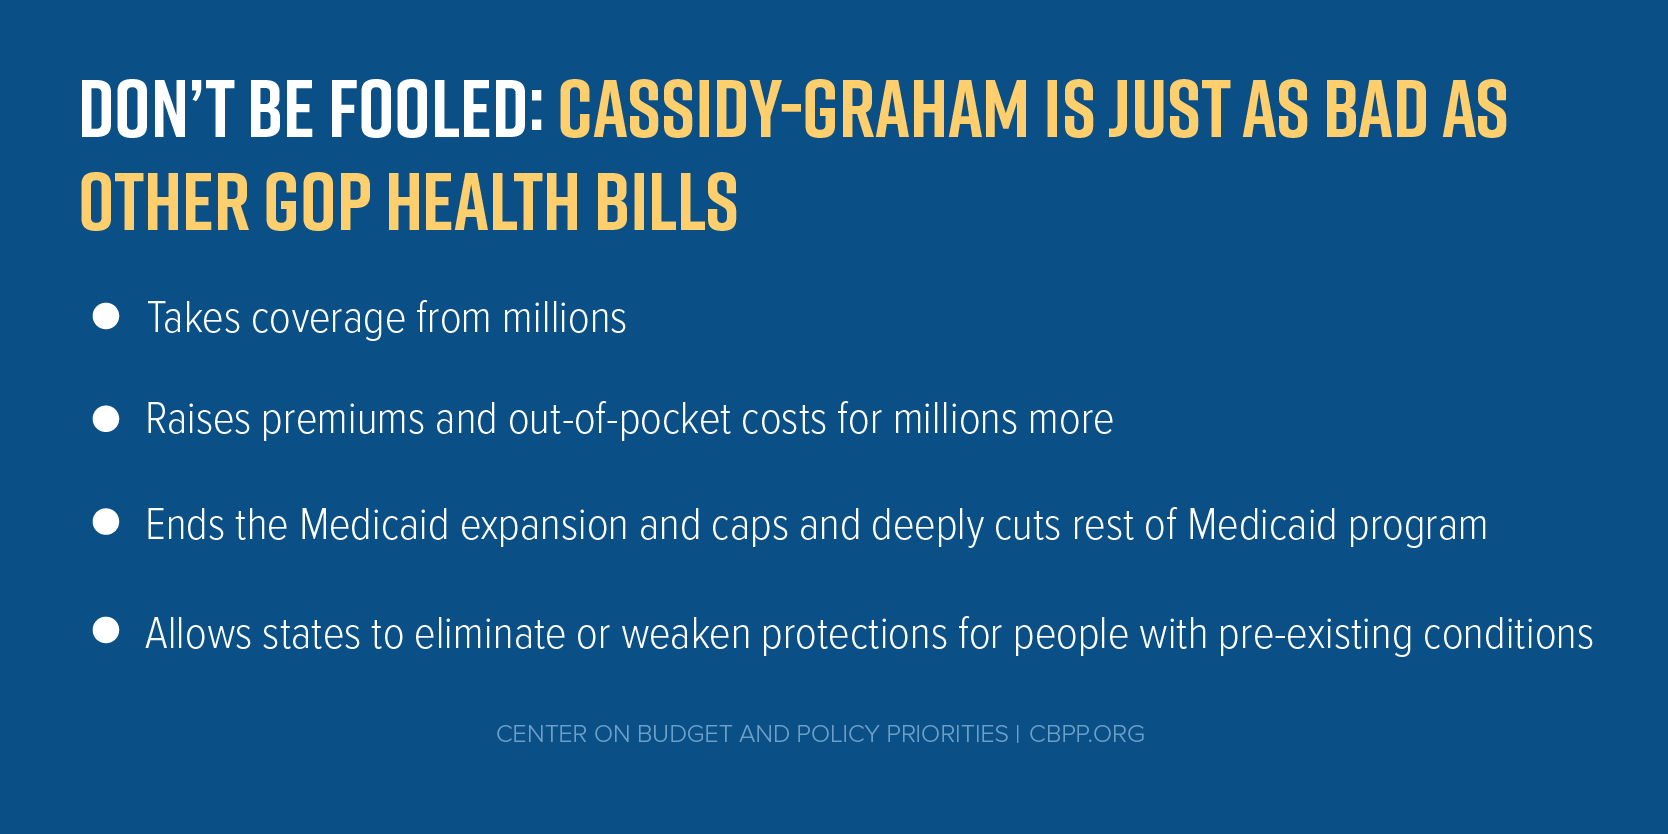 Don't Be Fooled: Cassidy-Graham Is Just As Bad As Other GOP Health Bills